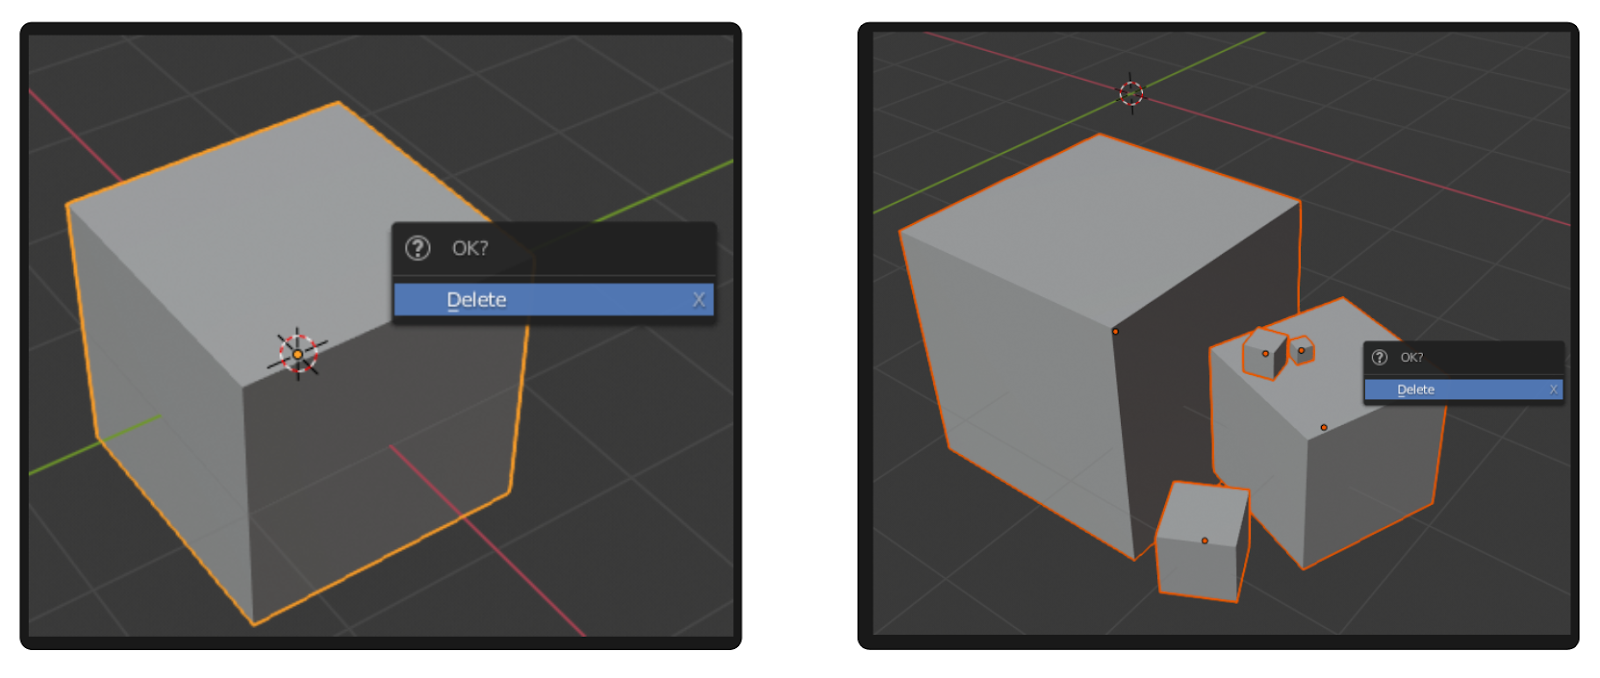 Object Management in Blender. Removing, duplicating, and renaming